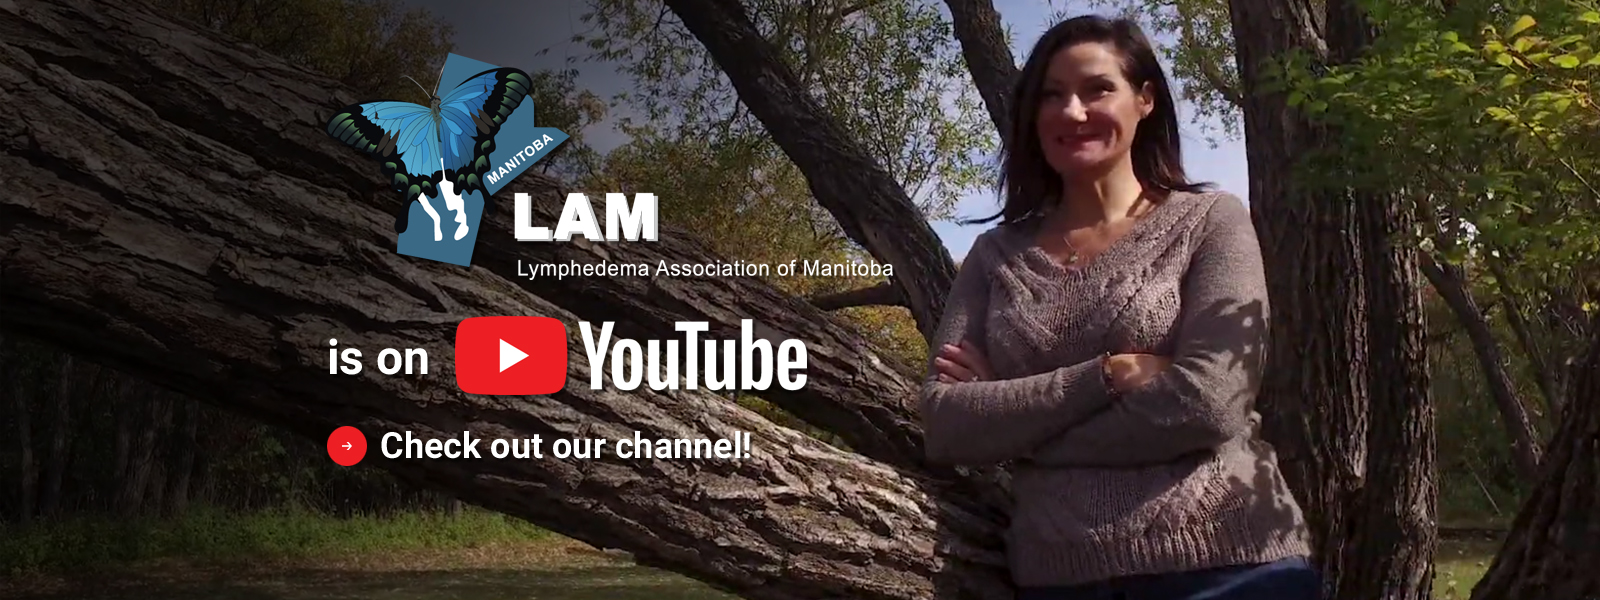 Lymphedema Association of Manitoba is on YouTube. Check out our channel!